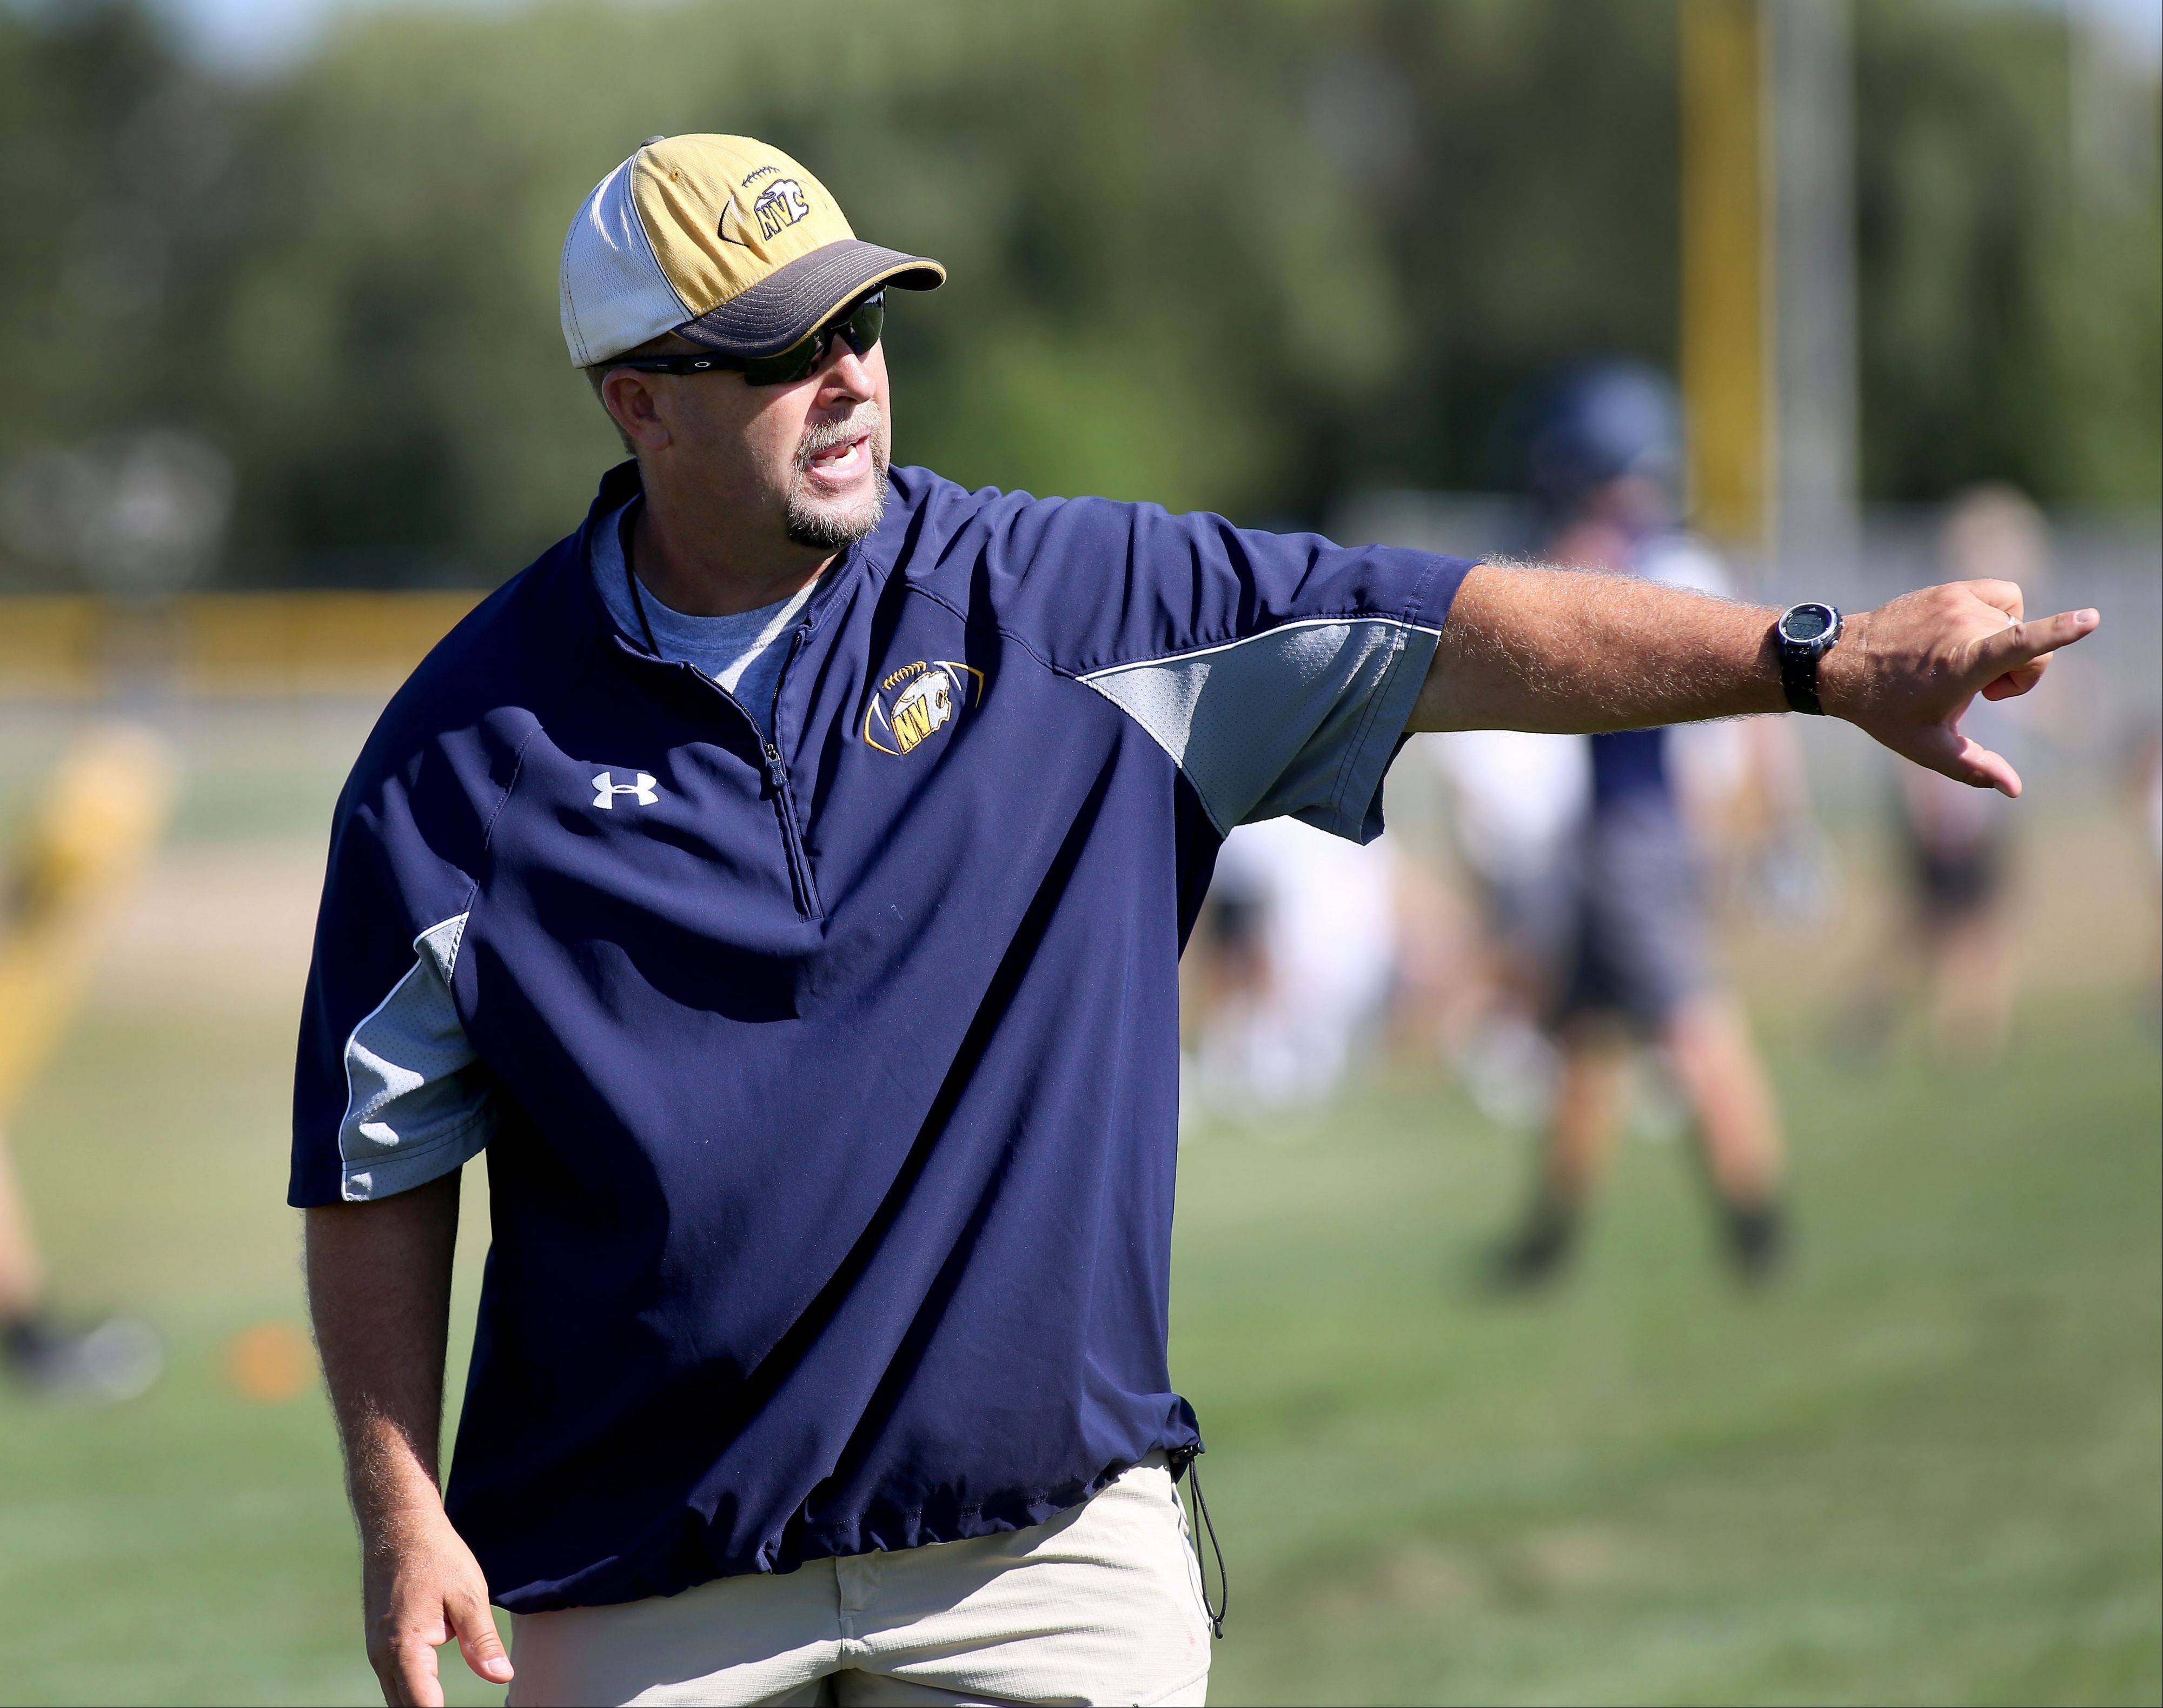 Neuqua Valley football coach Bill Ellinghaus leads practice on Wednesday in Naperville.